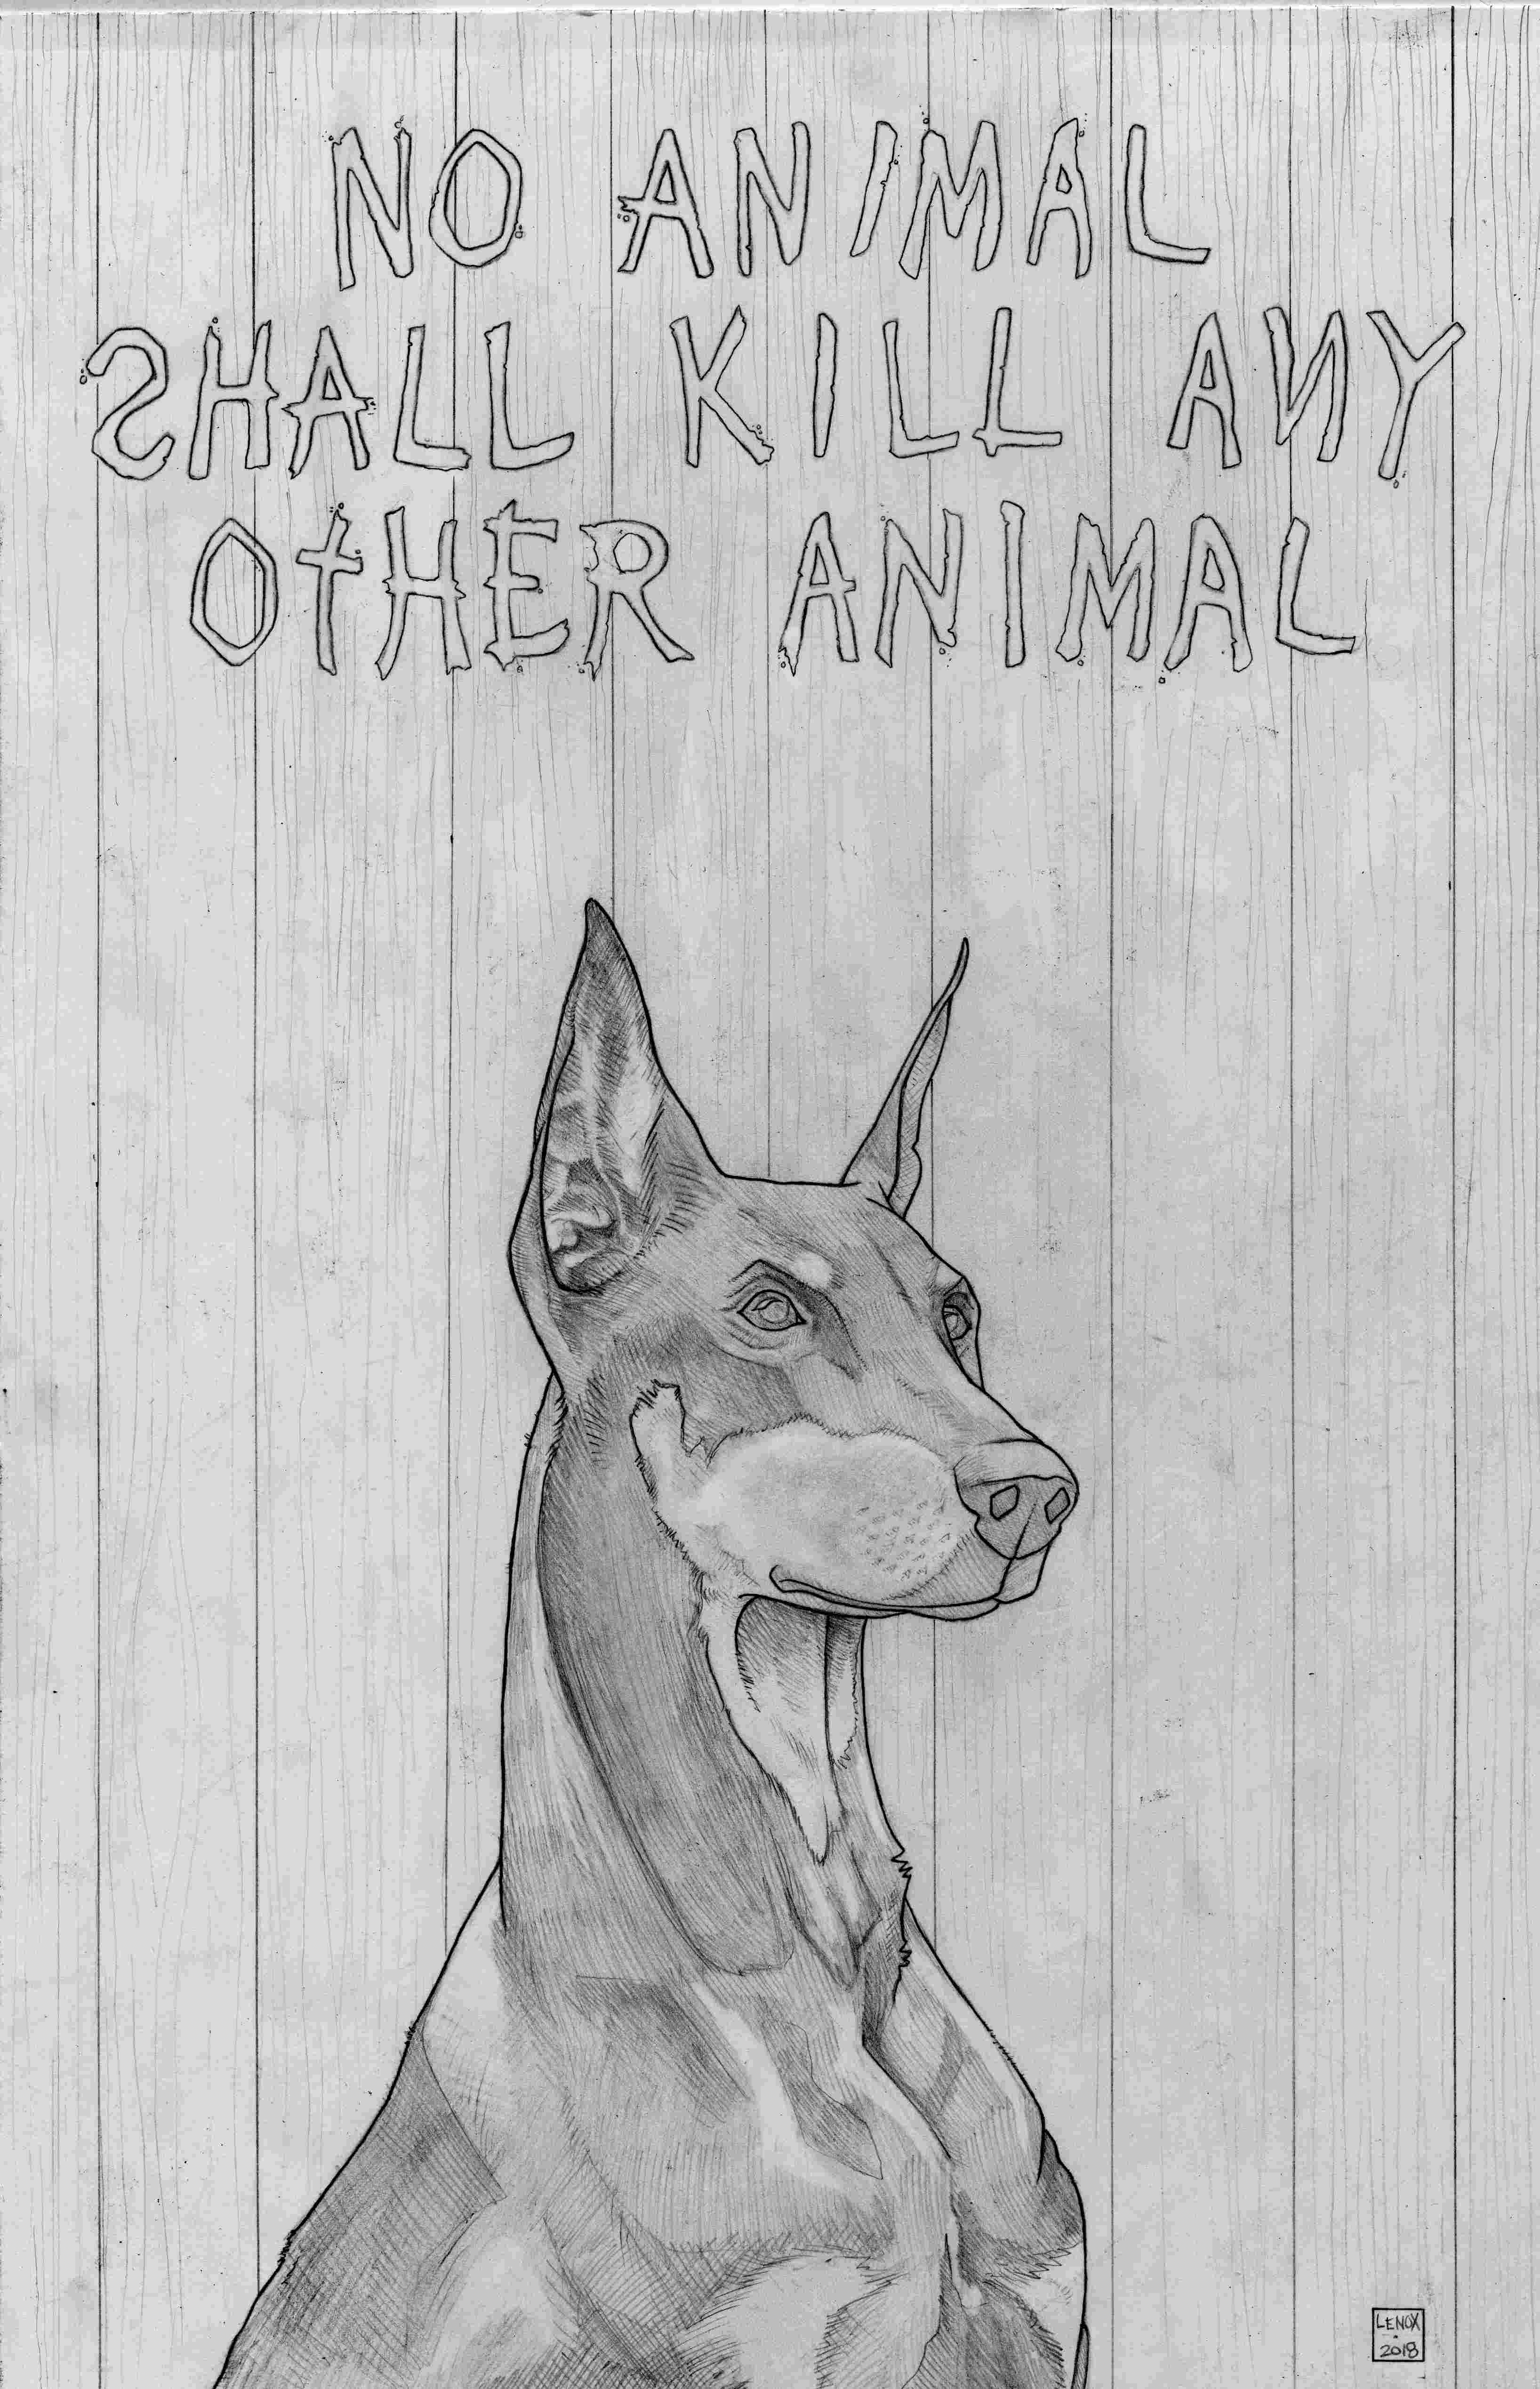 Animal Farm Pincher Pencils Jason Lenox